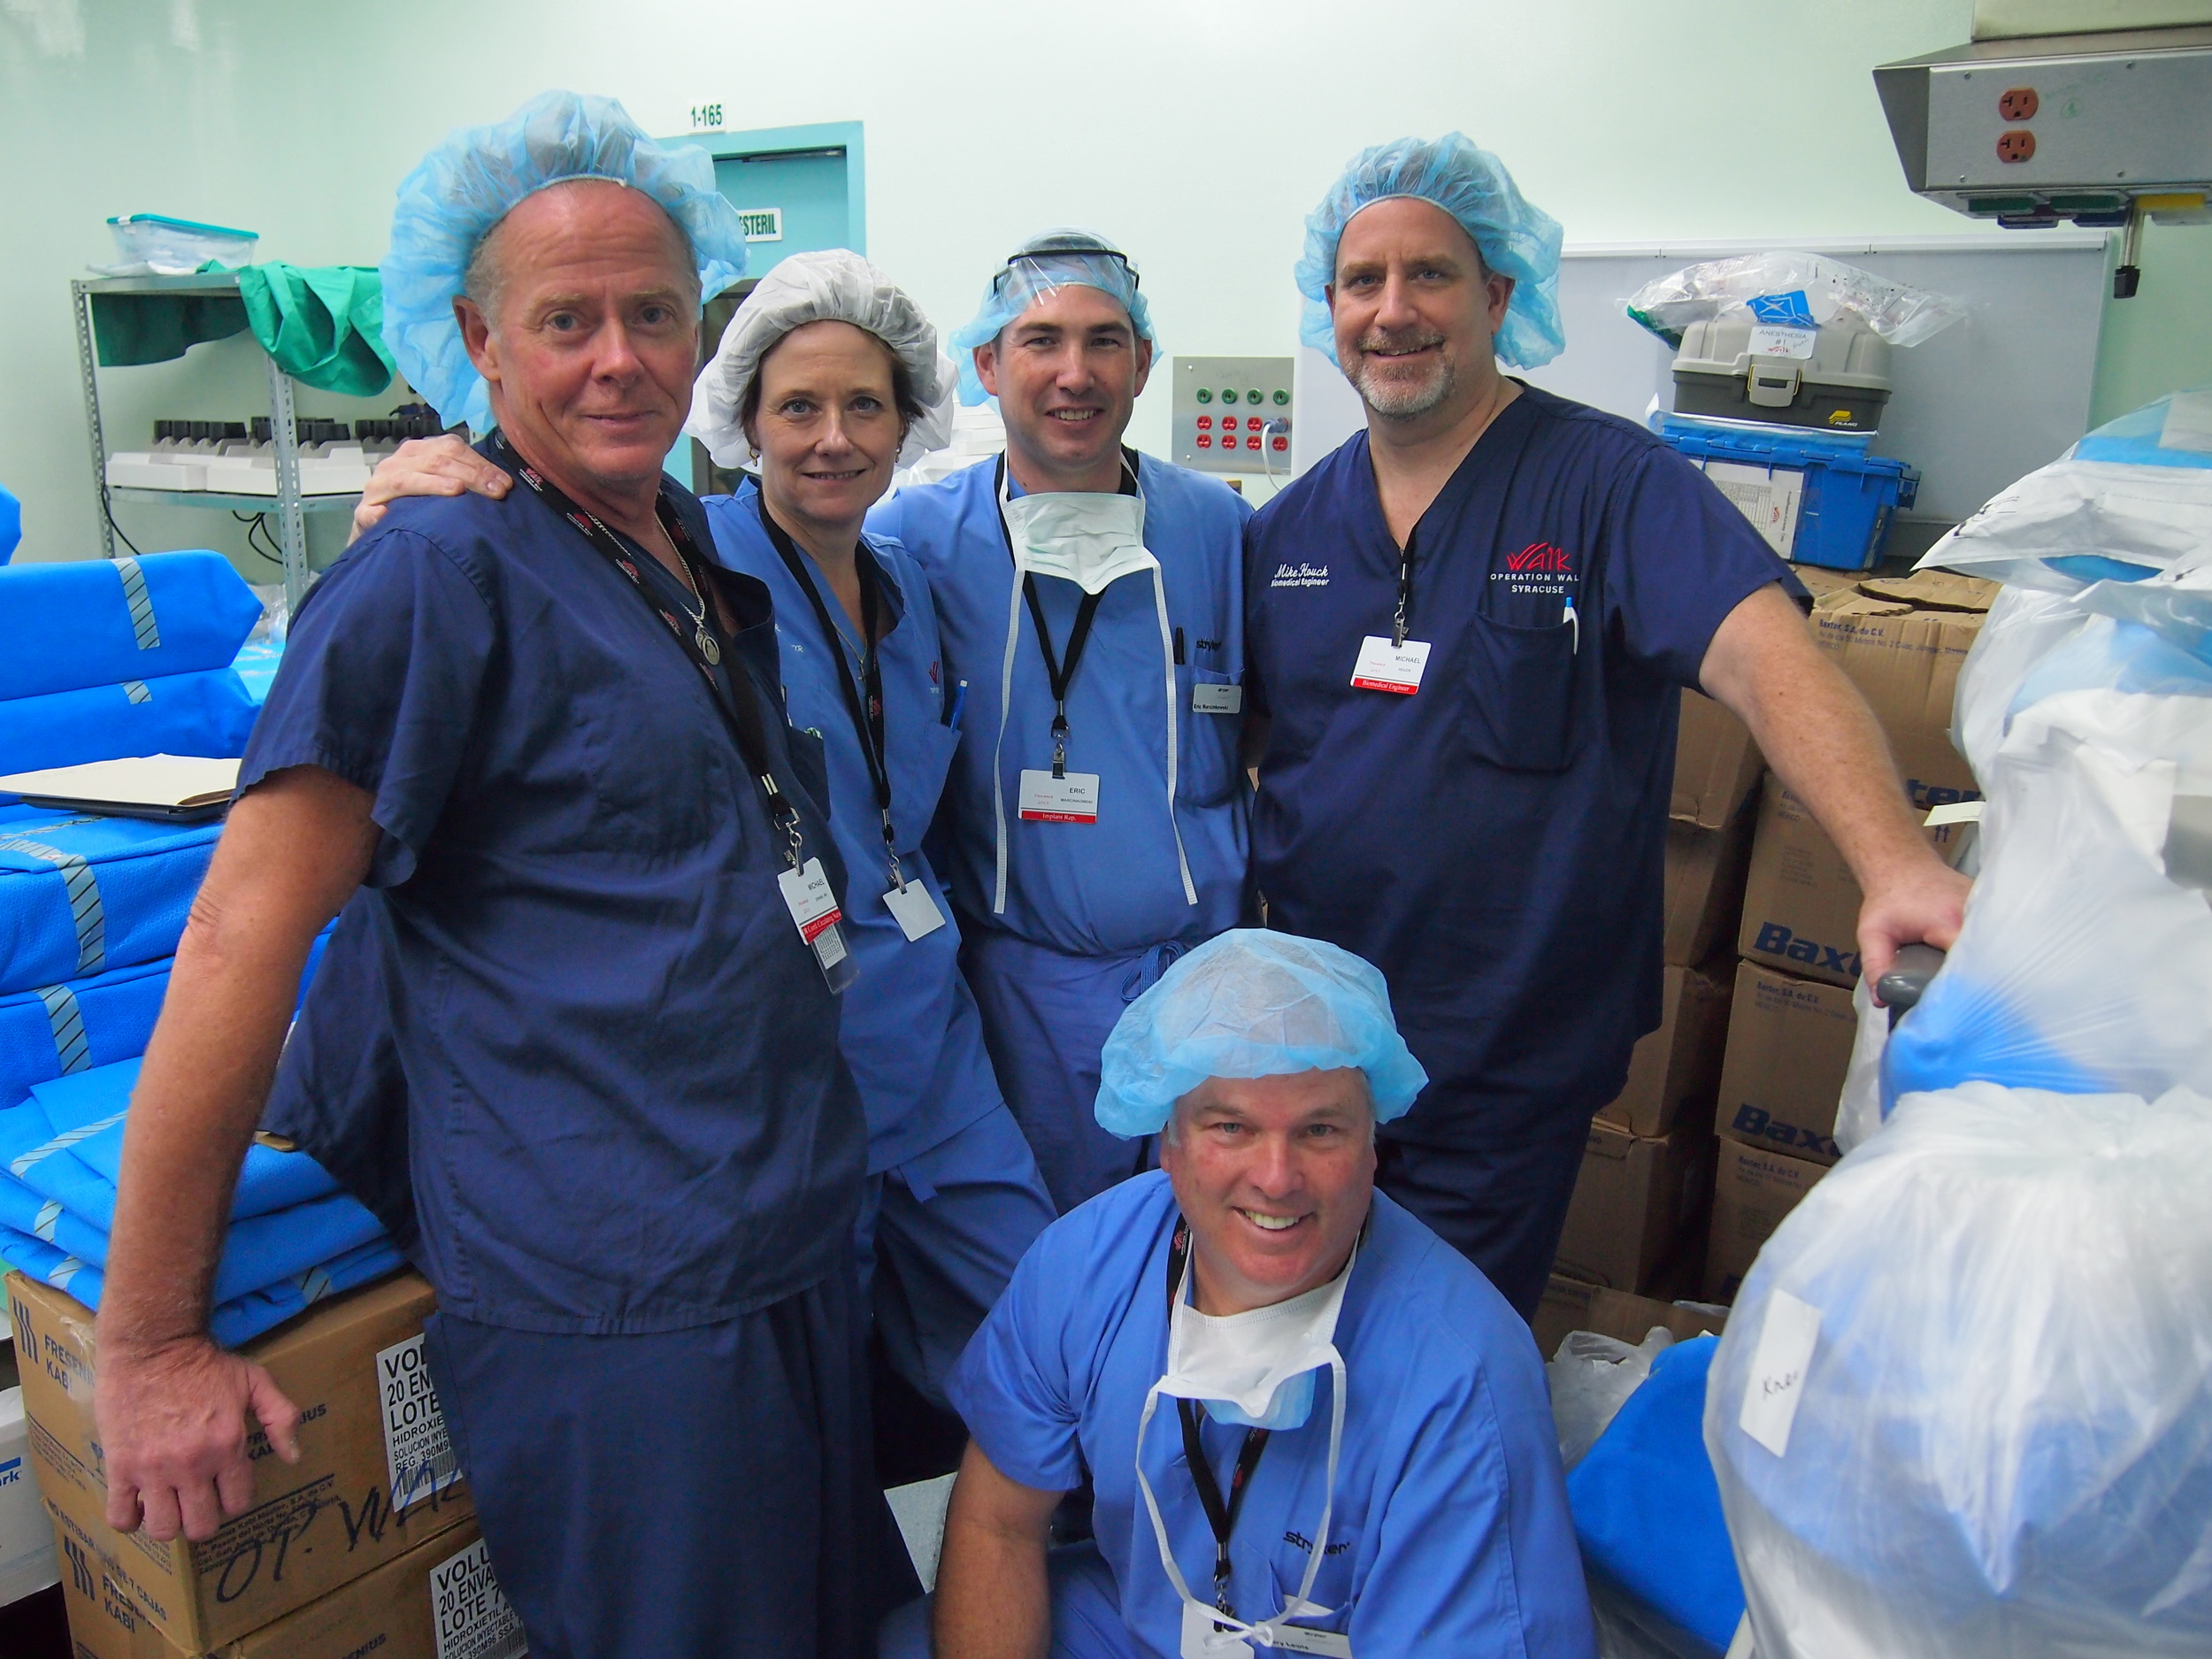 Pictured here are critical members of the supply team. Mike O'Hara, Kim Murray, Eric Marcinkowski, Mike Houck and Gary Lewis.  Mike, Kim and Mike all work for St. Joseph's Hospital Health Center and Eric and Gary both work for our implant donator Stryker.